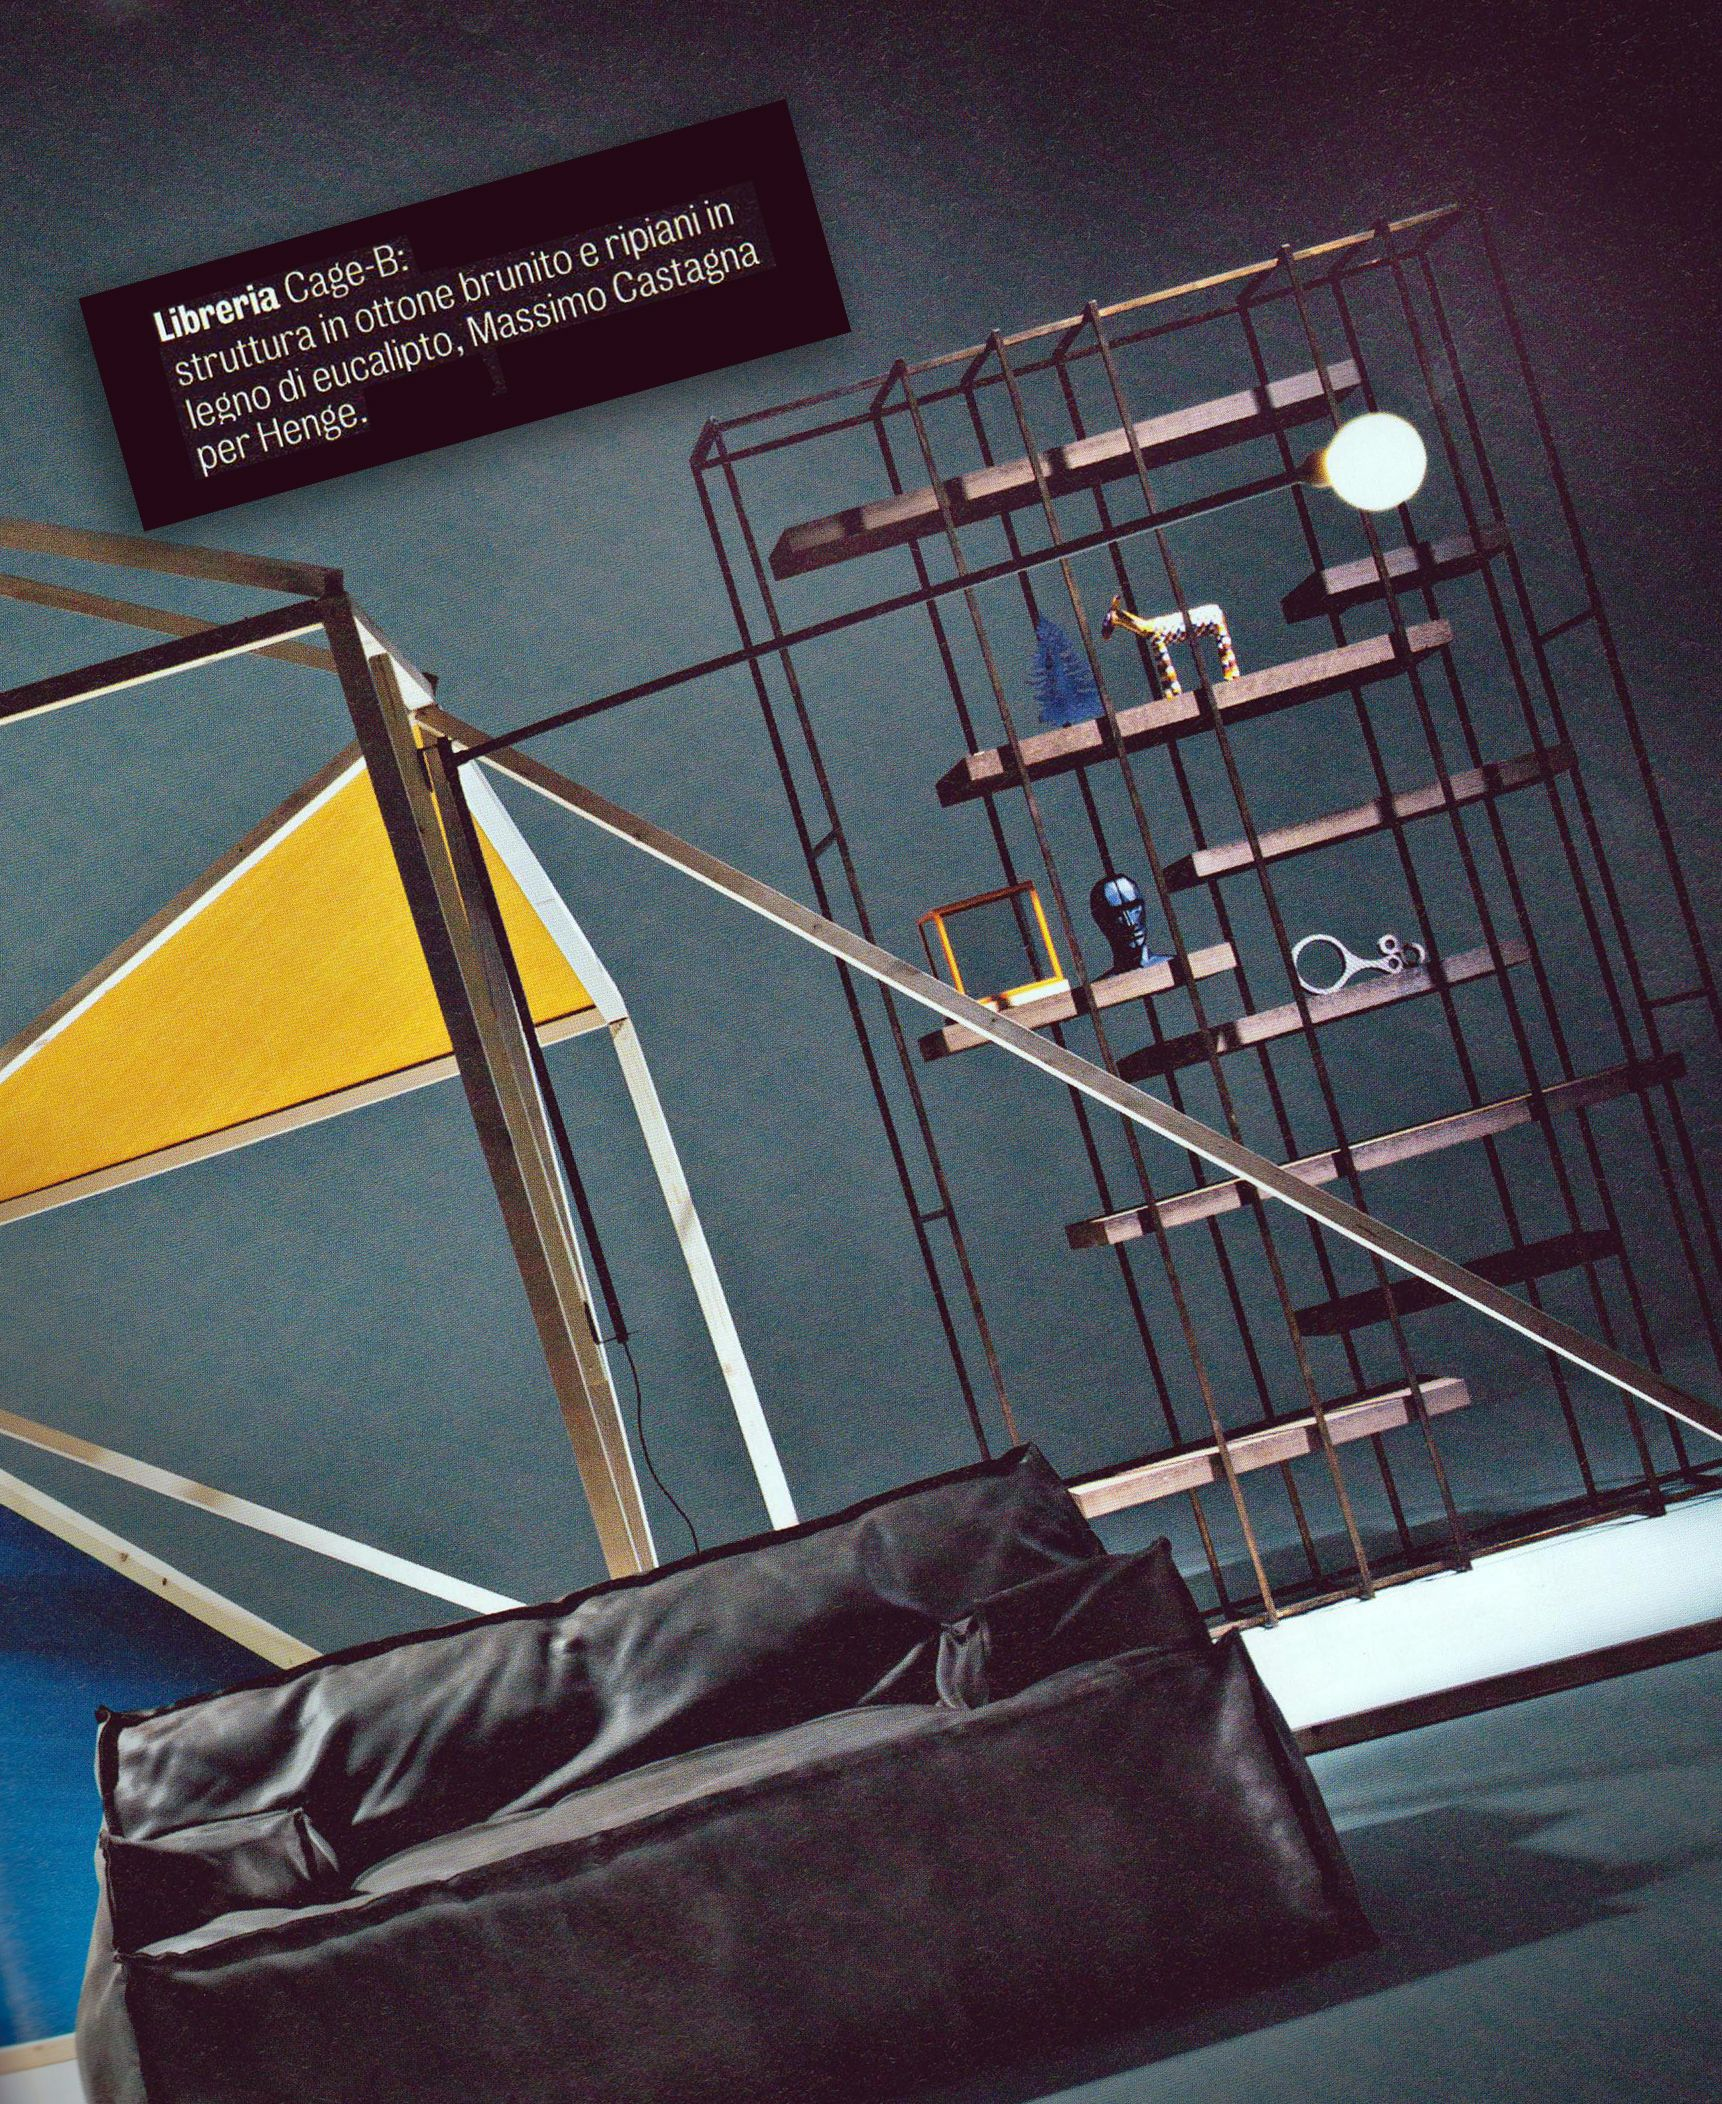 Cageb designed by massimo castagna for henge appeared